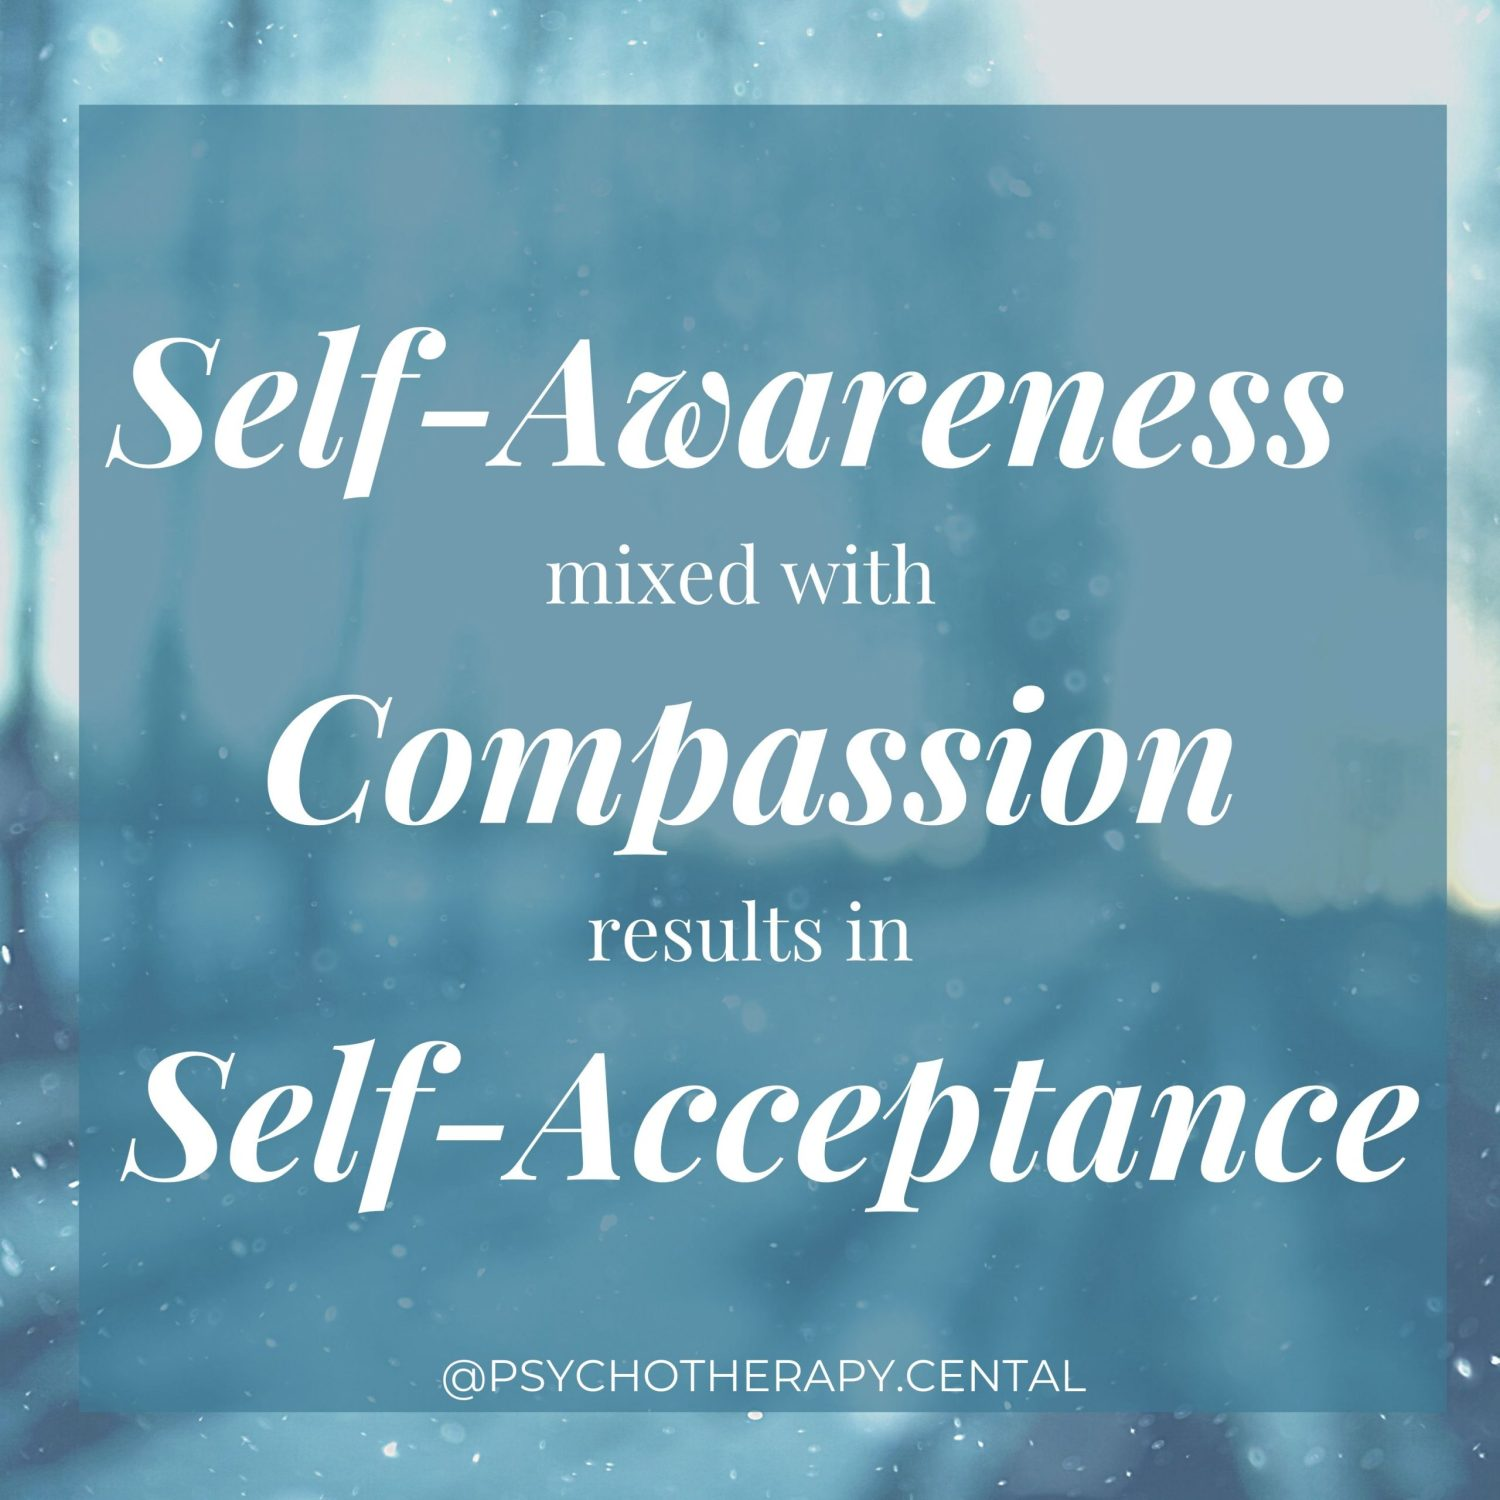 Self-Awareness mixed with Compassion results in Self-Acceptance